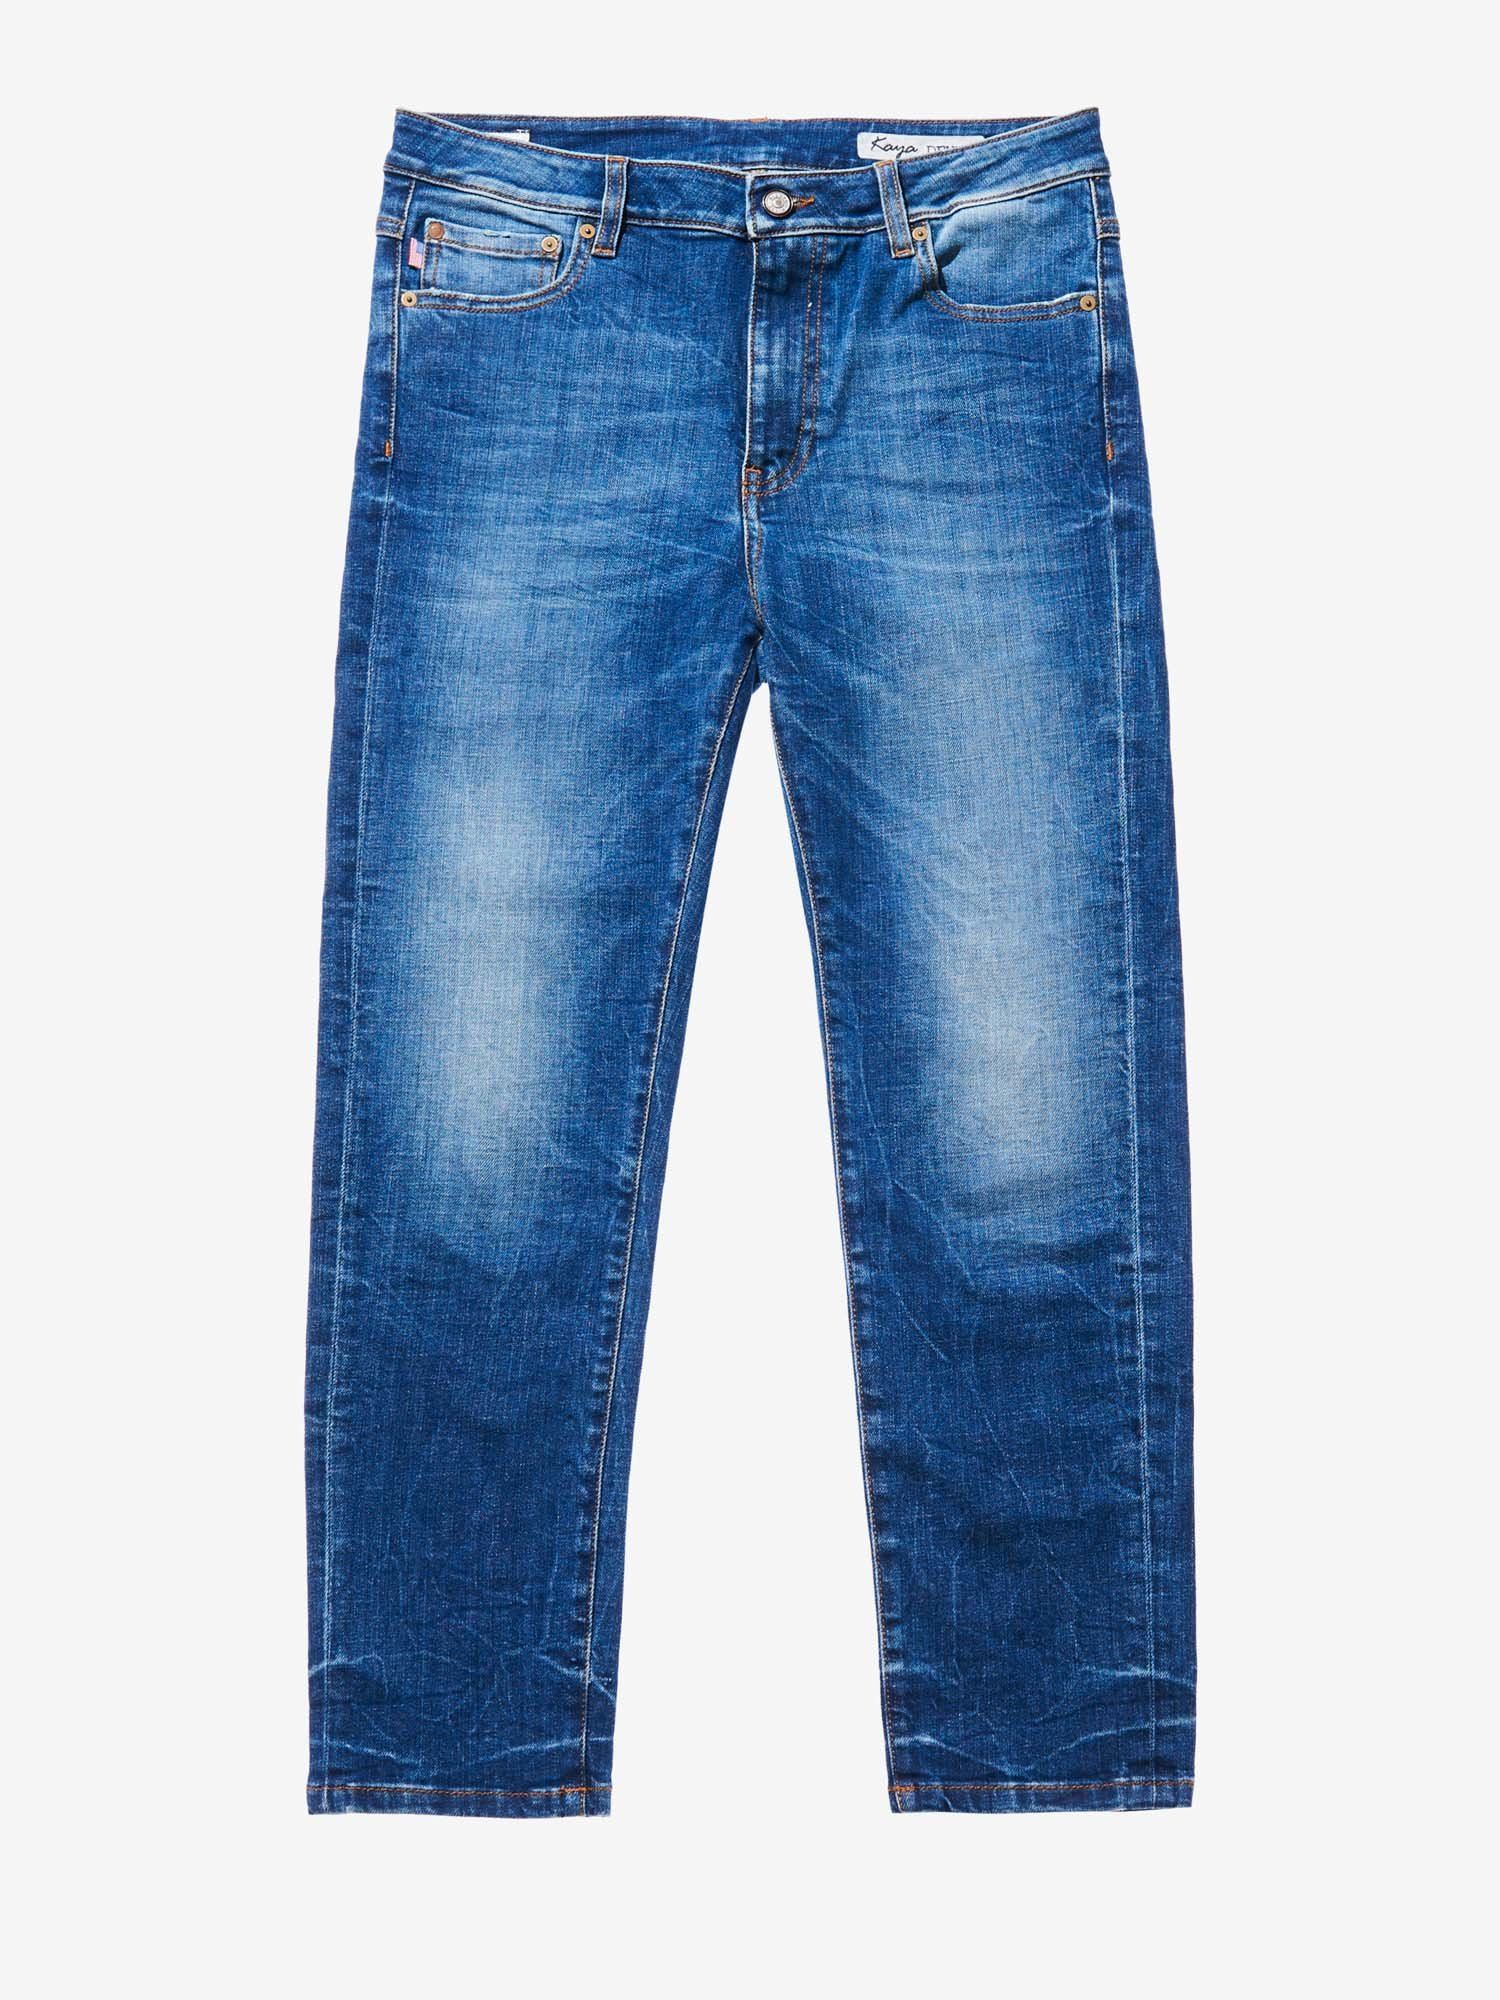 USED STRETCH DENIM - Blauer